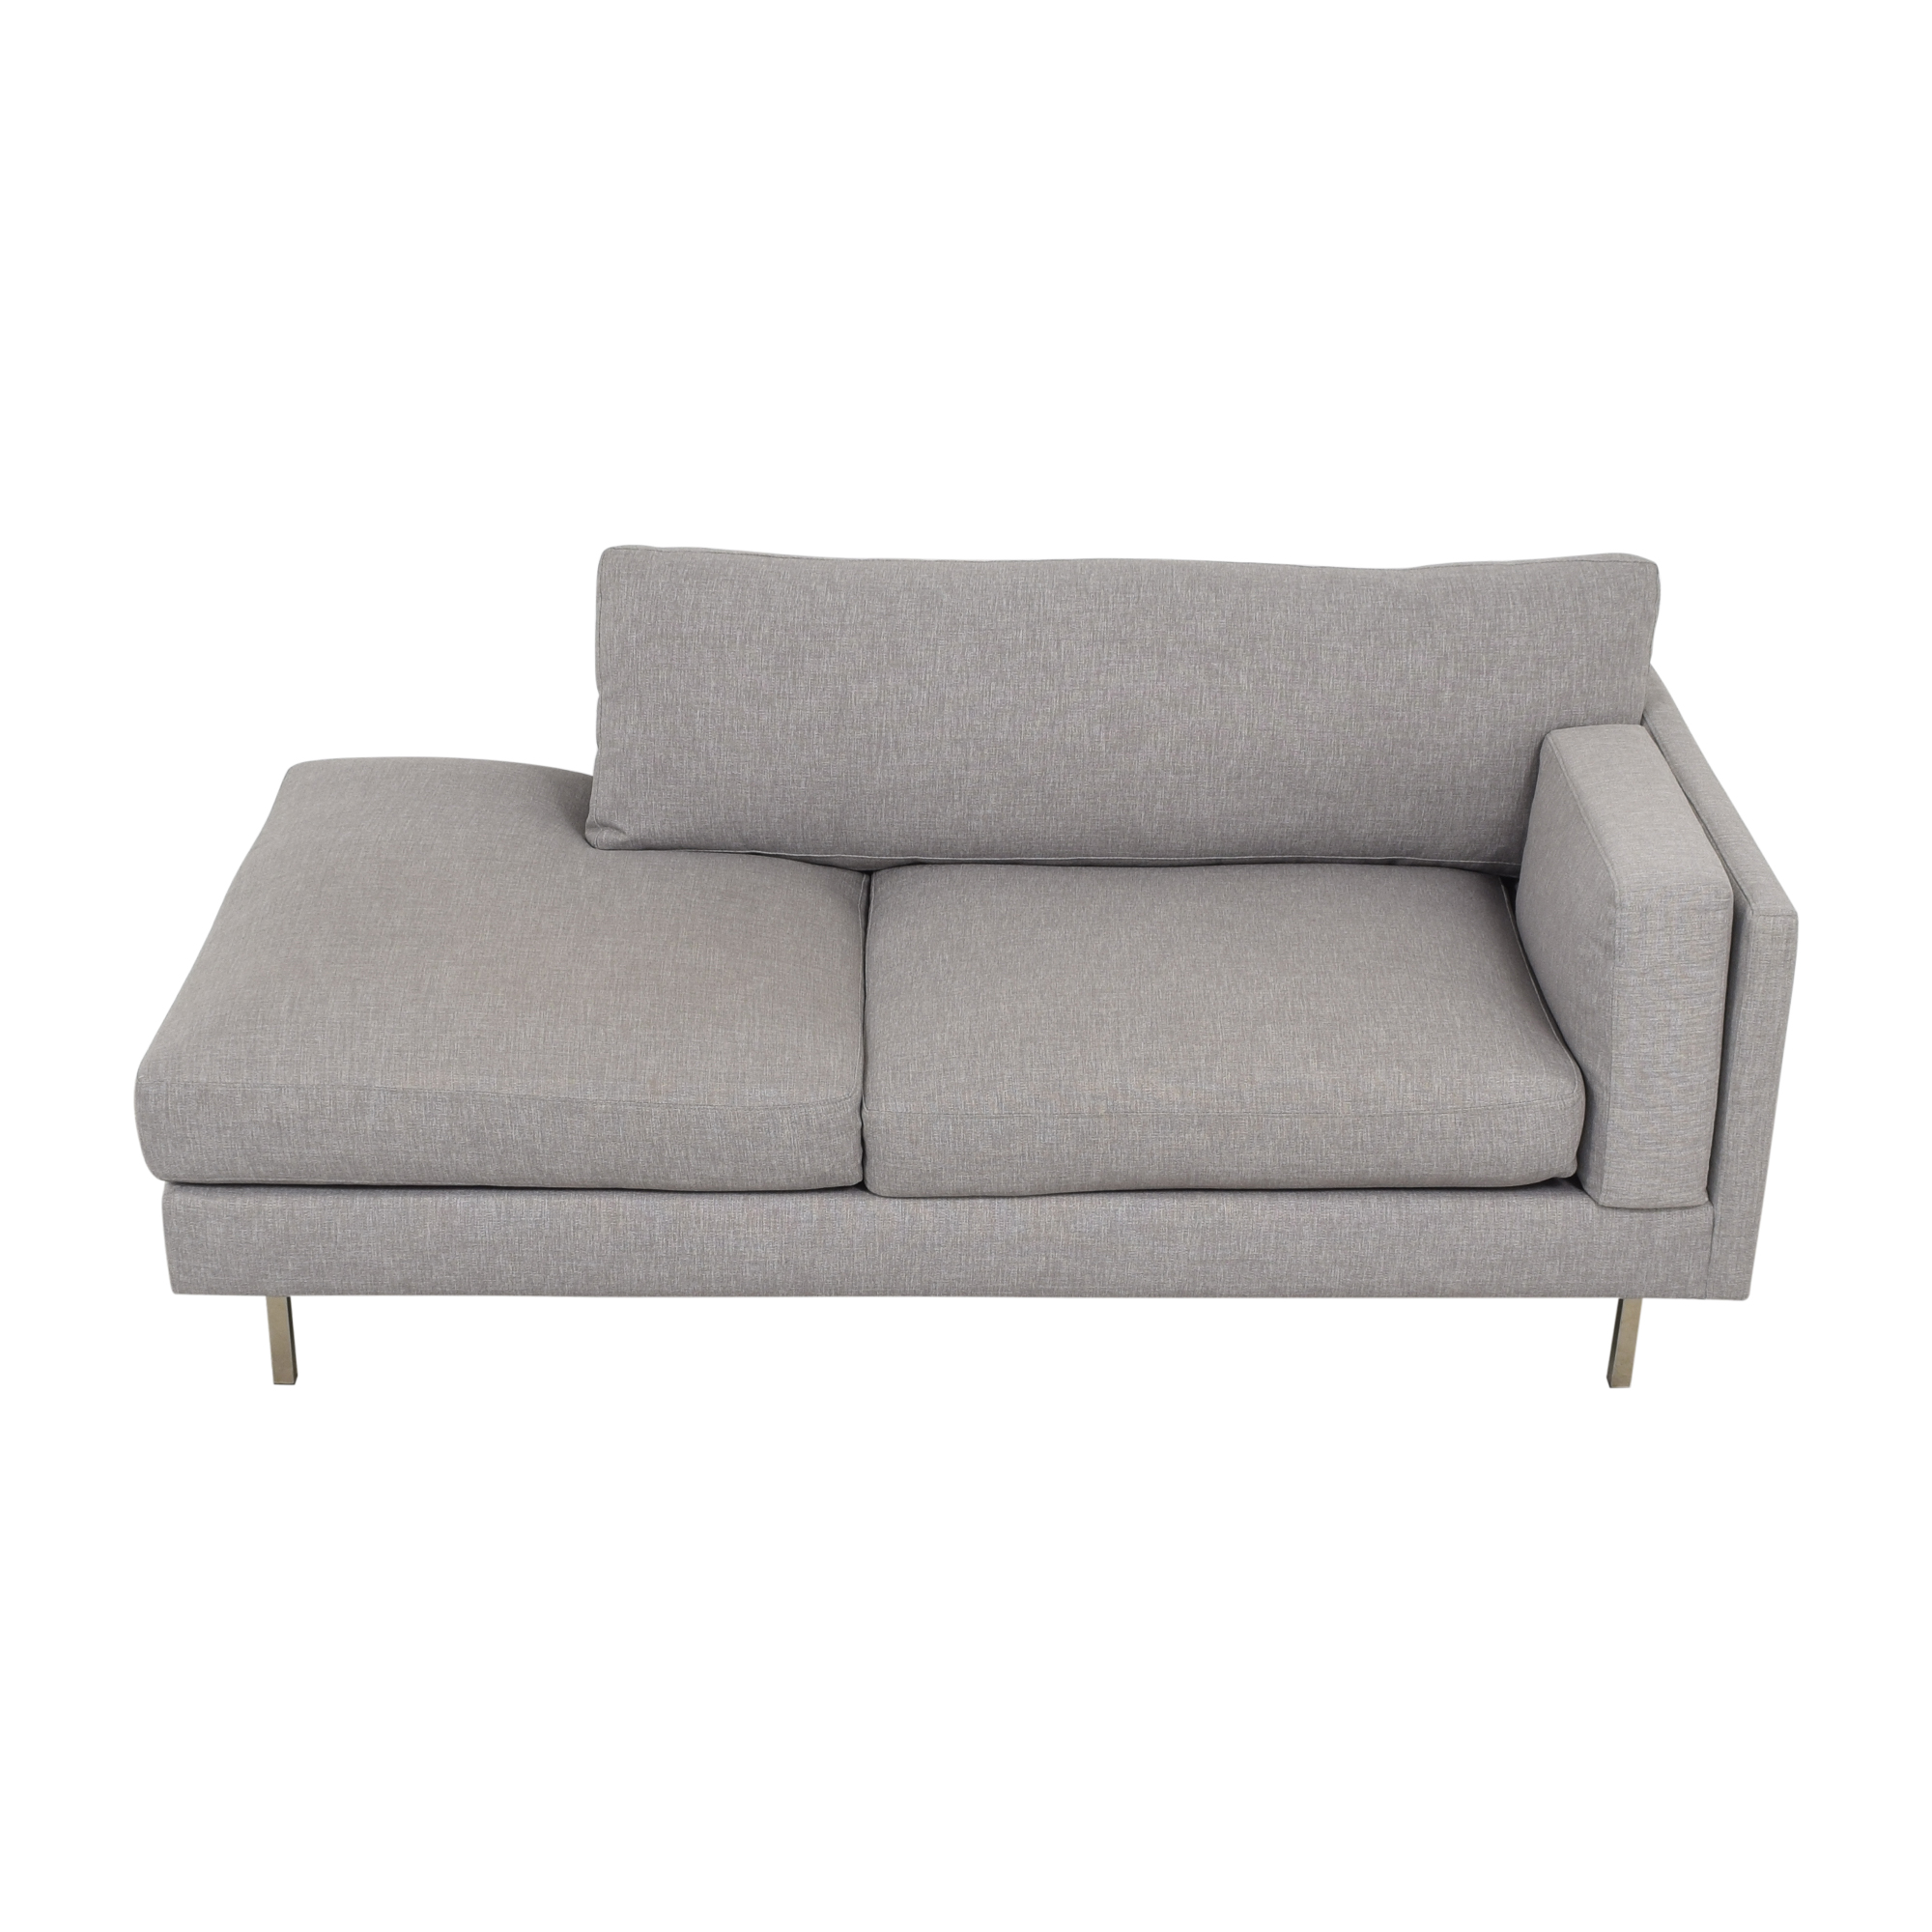 BenchMade Modern BenchMade Modern Skinny Fat Sofa with Bumper price